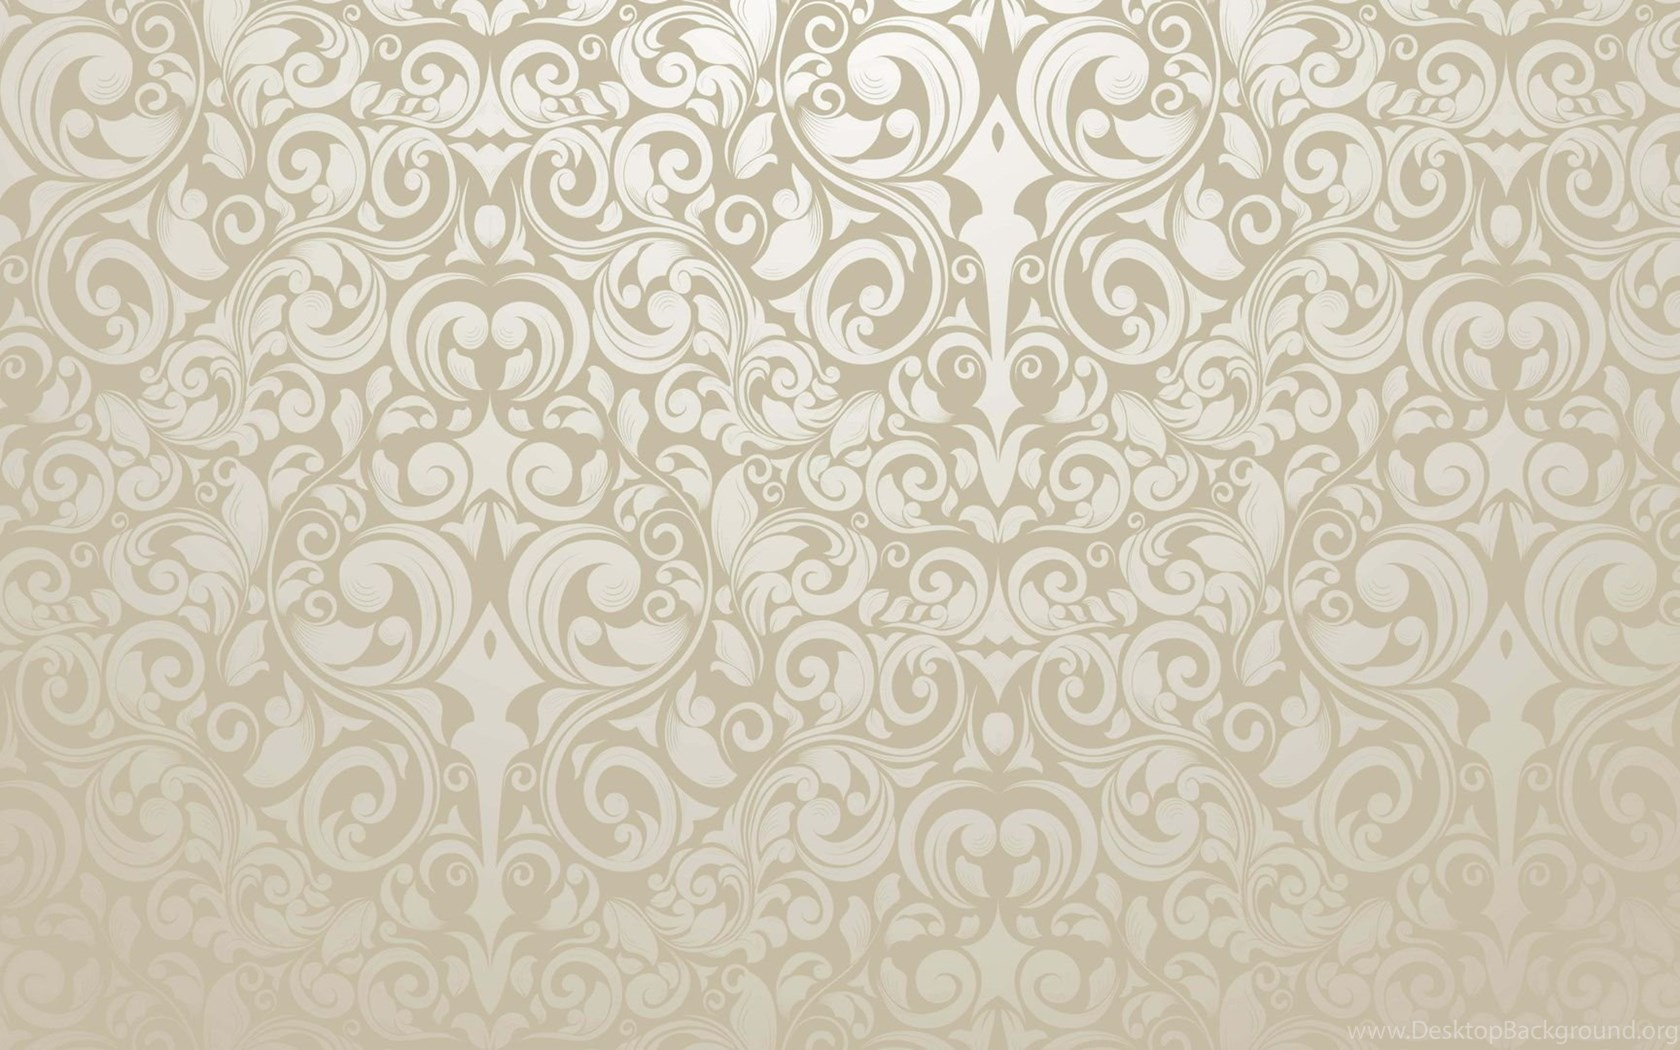 High Resolution Textured White Floral Wallpapers Full Size